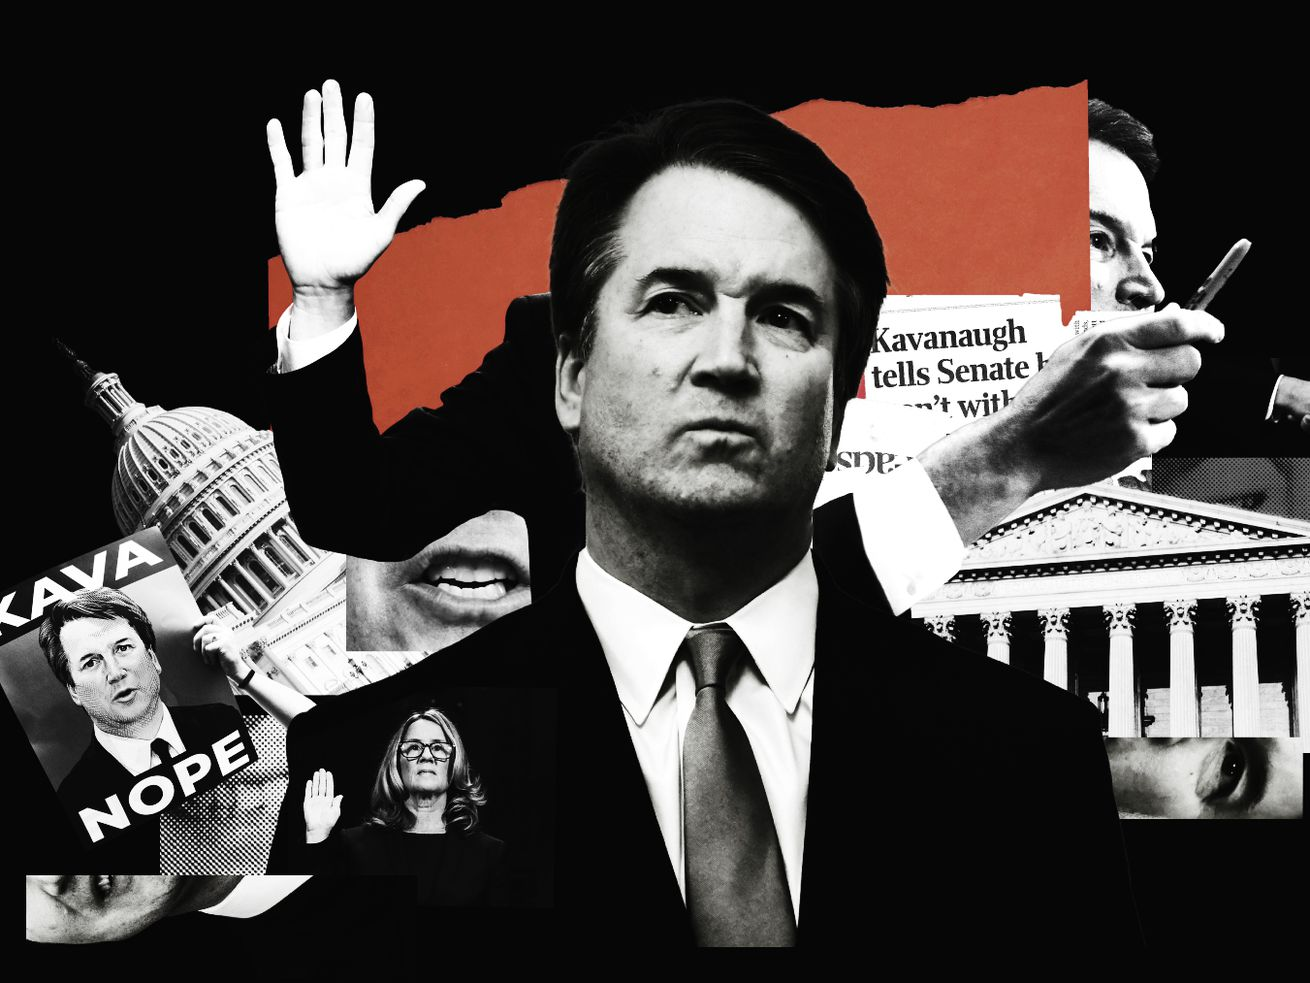 A photo illustration of Supreme Court Justice Brett Kavanaugh and Capitol buildings.